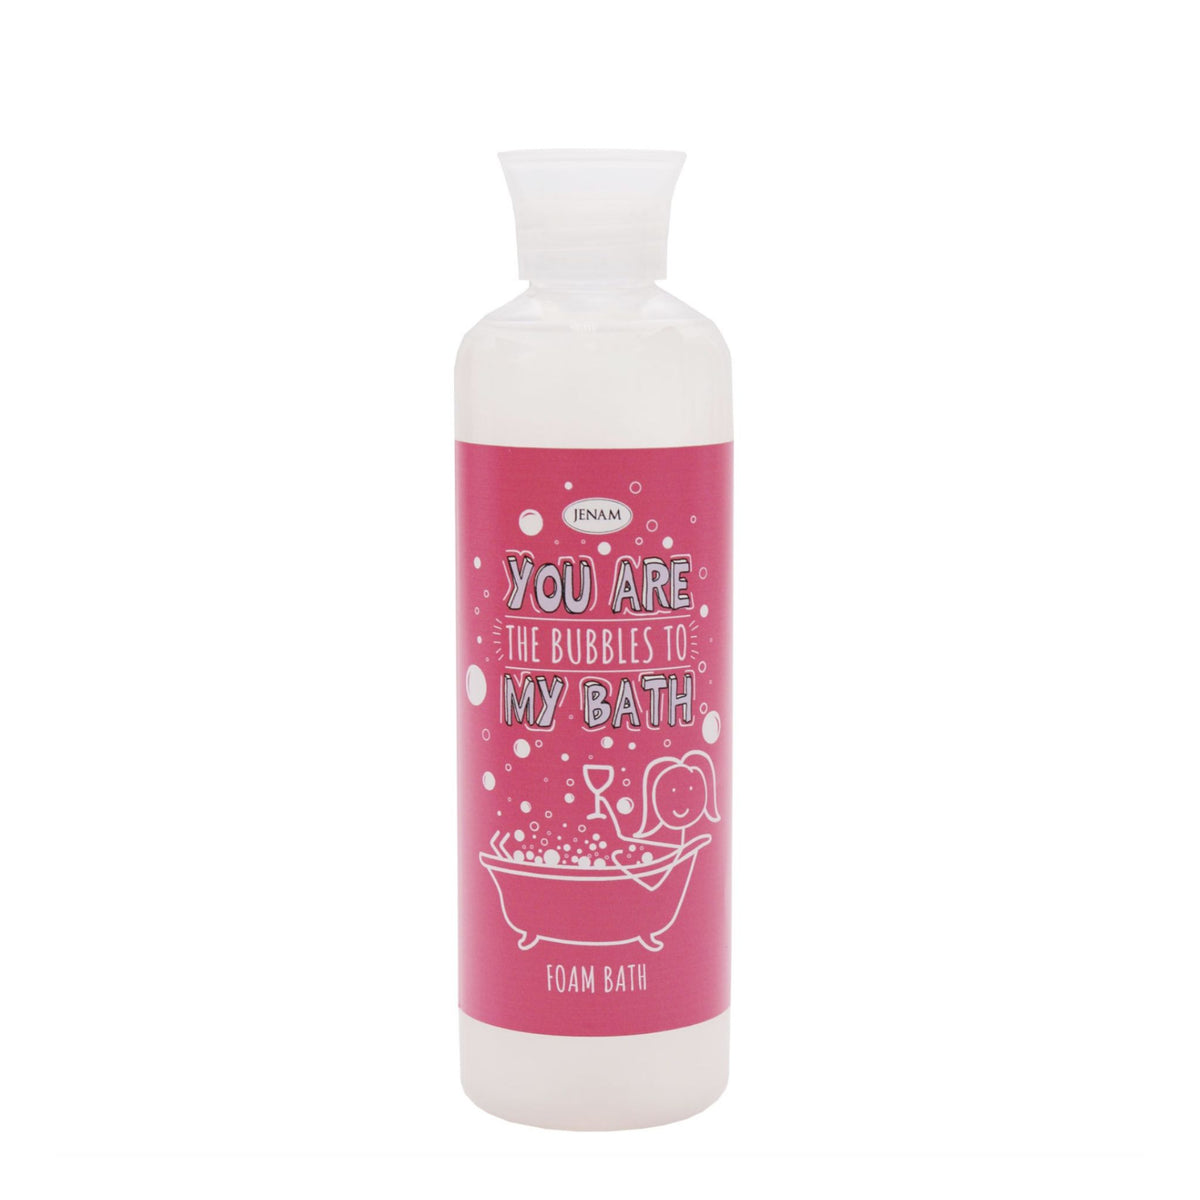 Quirky Romance Foam Bath